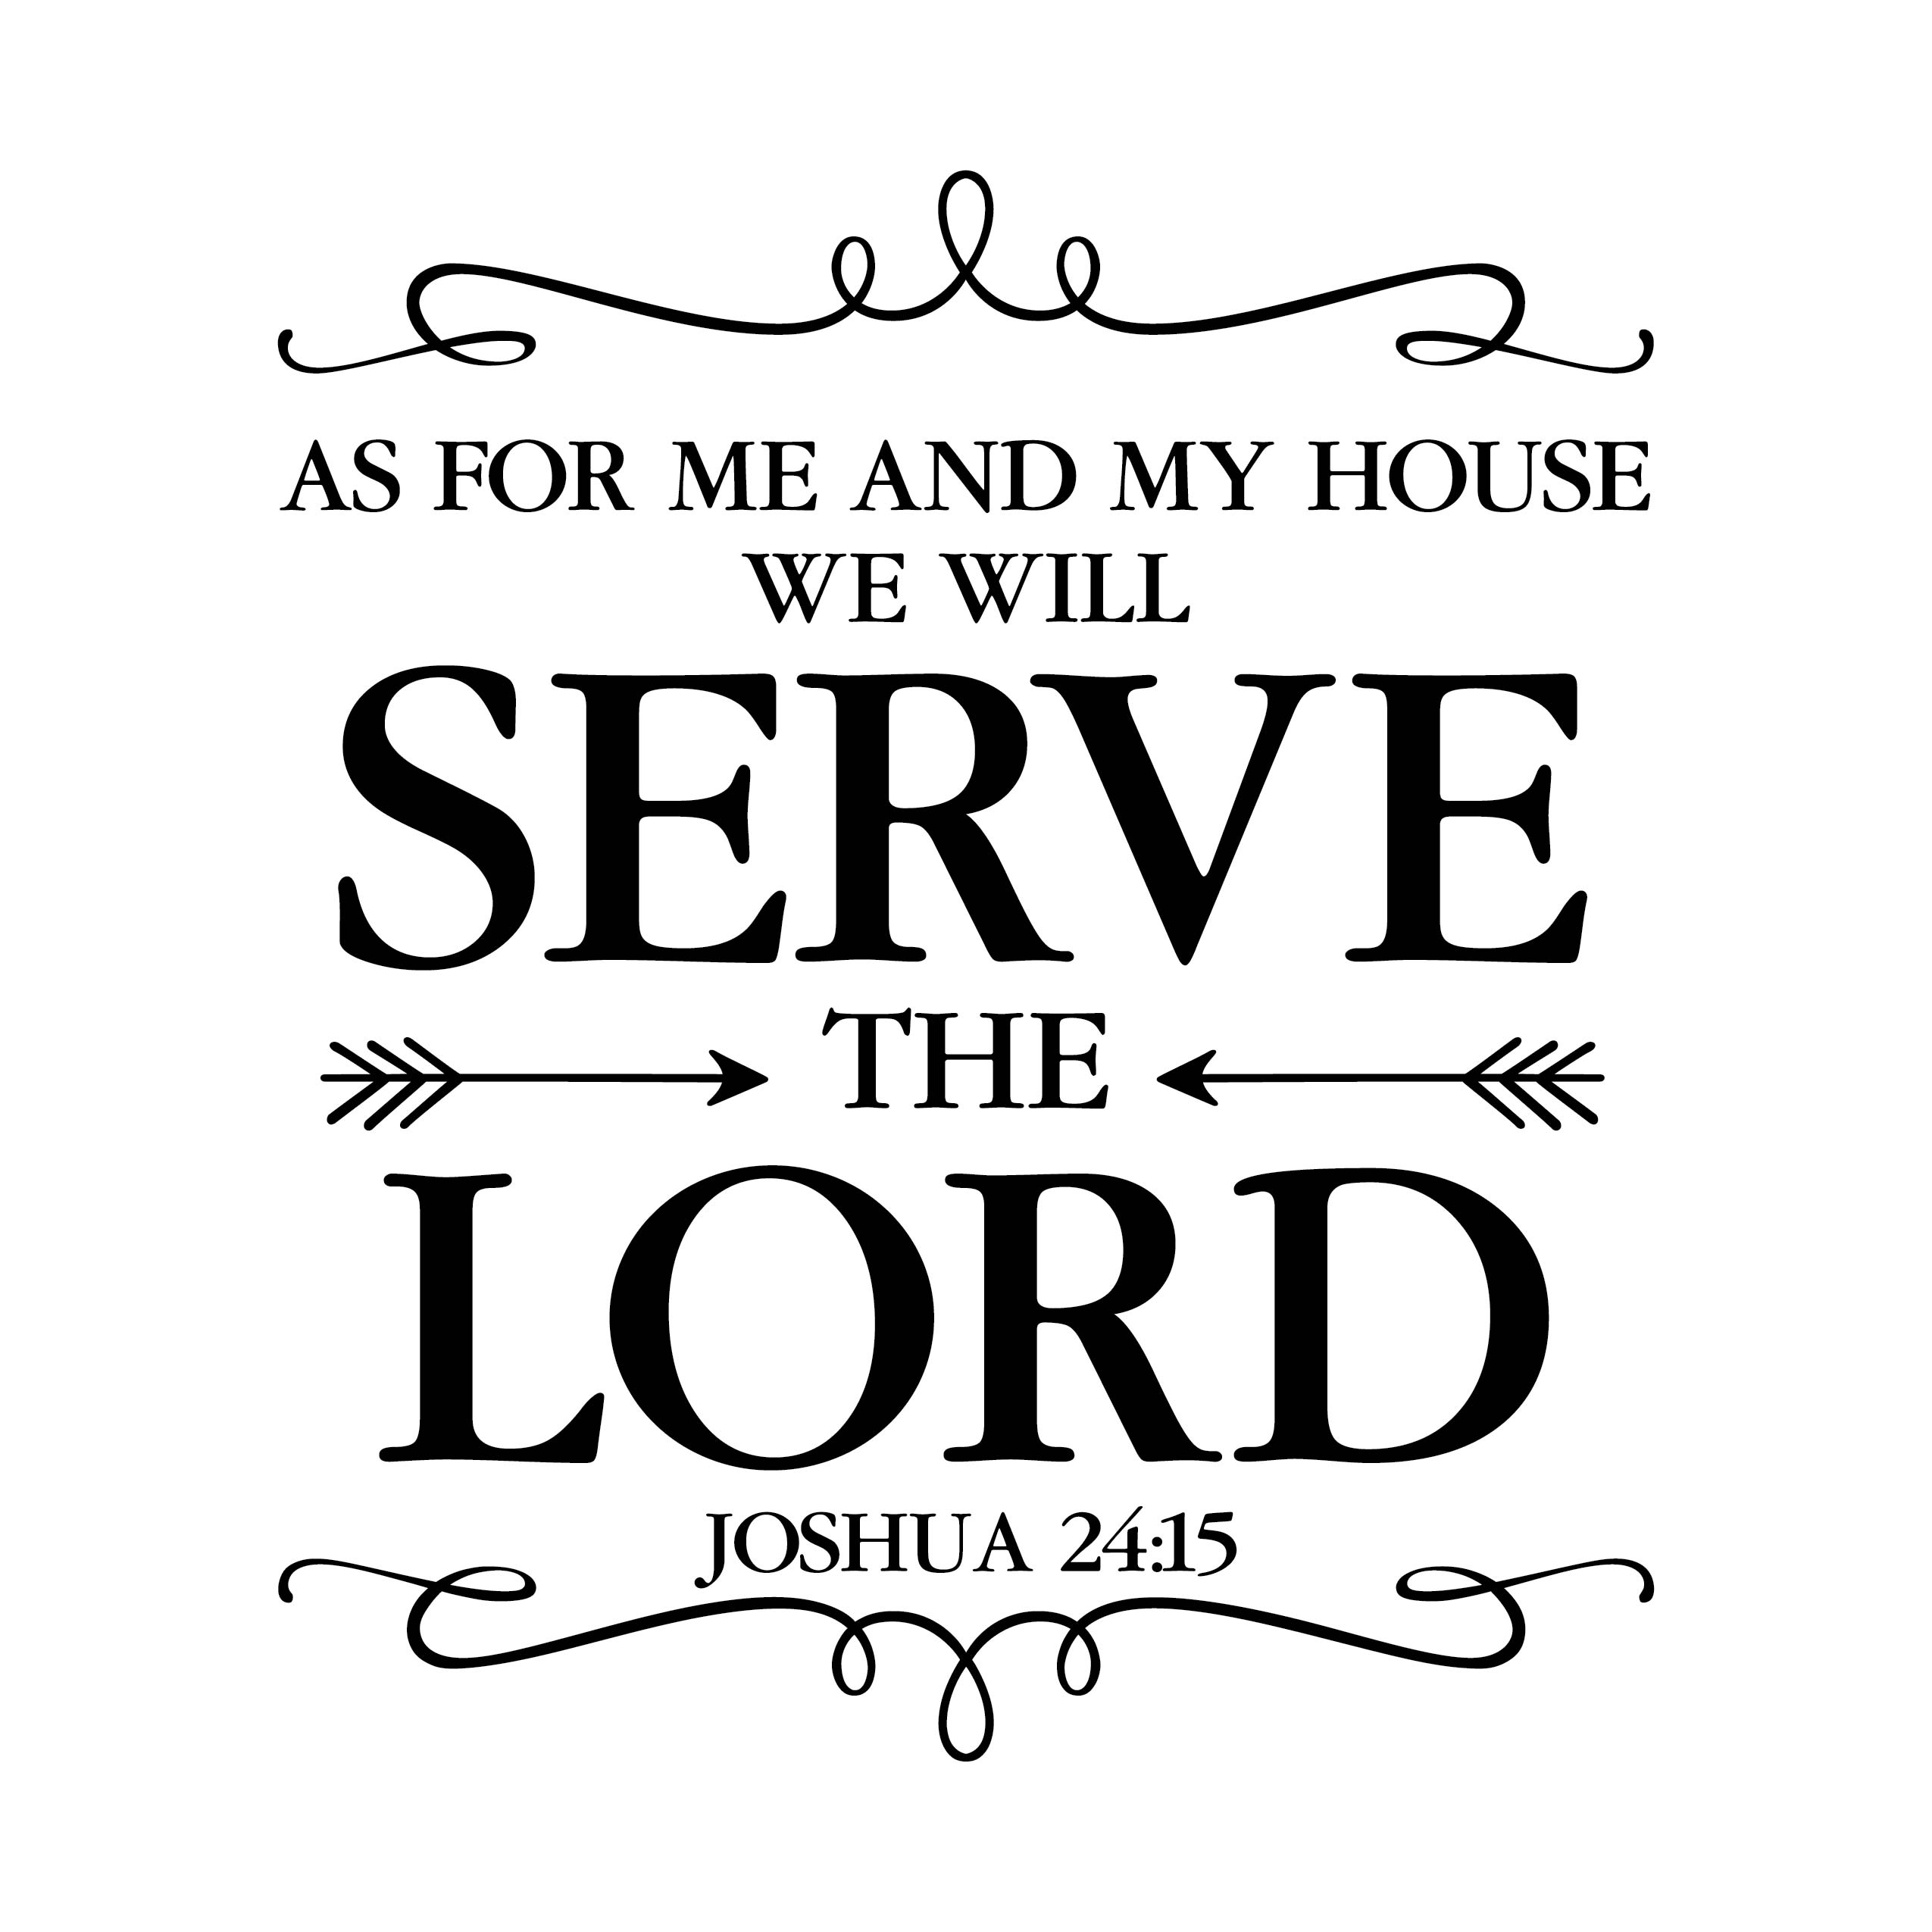 Joshua 24v15 Vinyl Wall Decal 19 As For Me And My House We